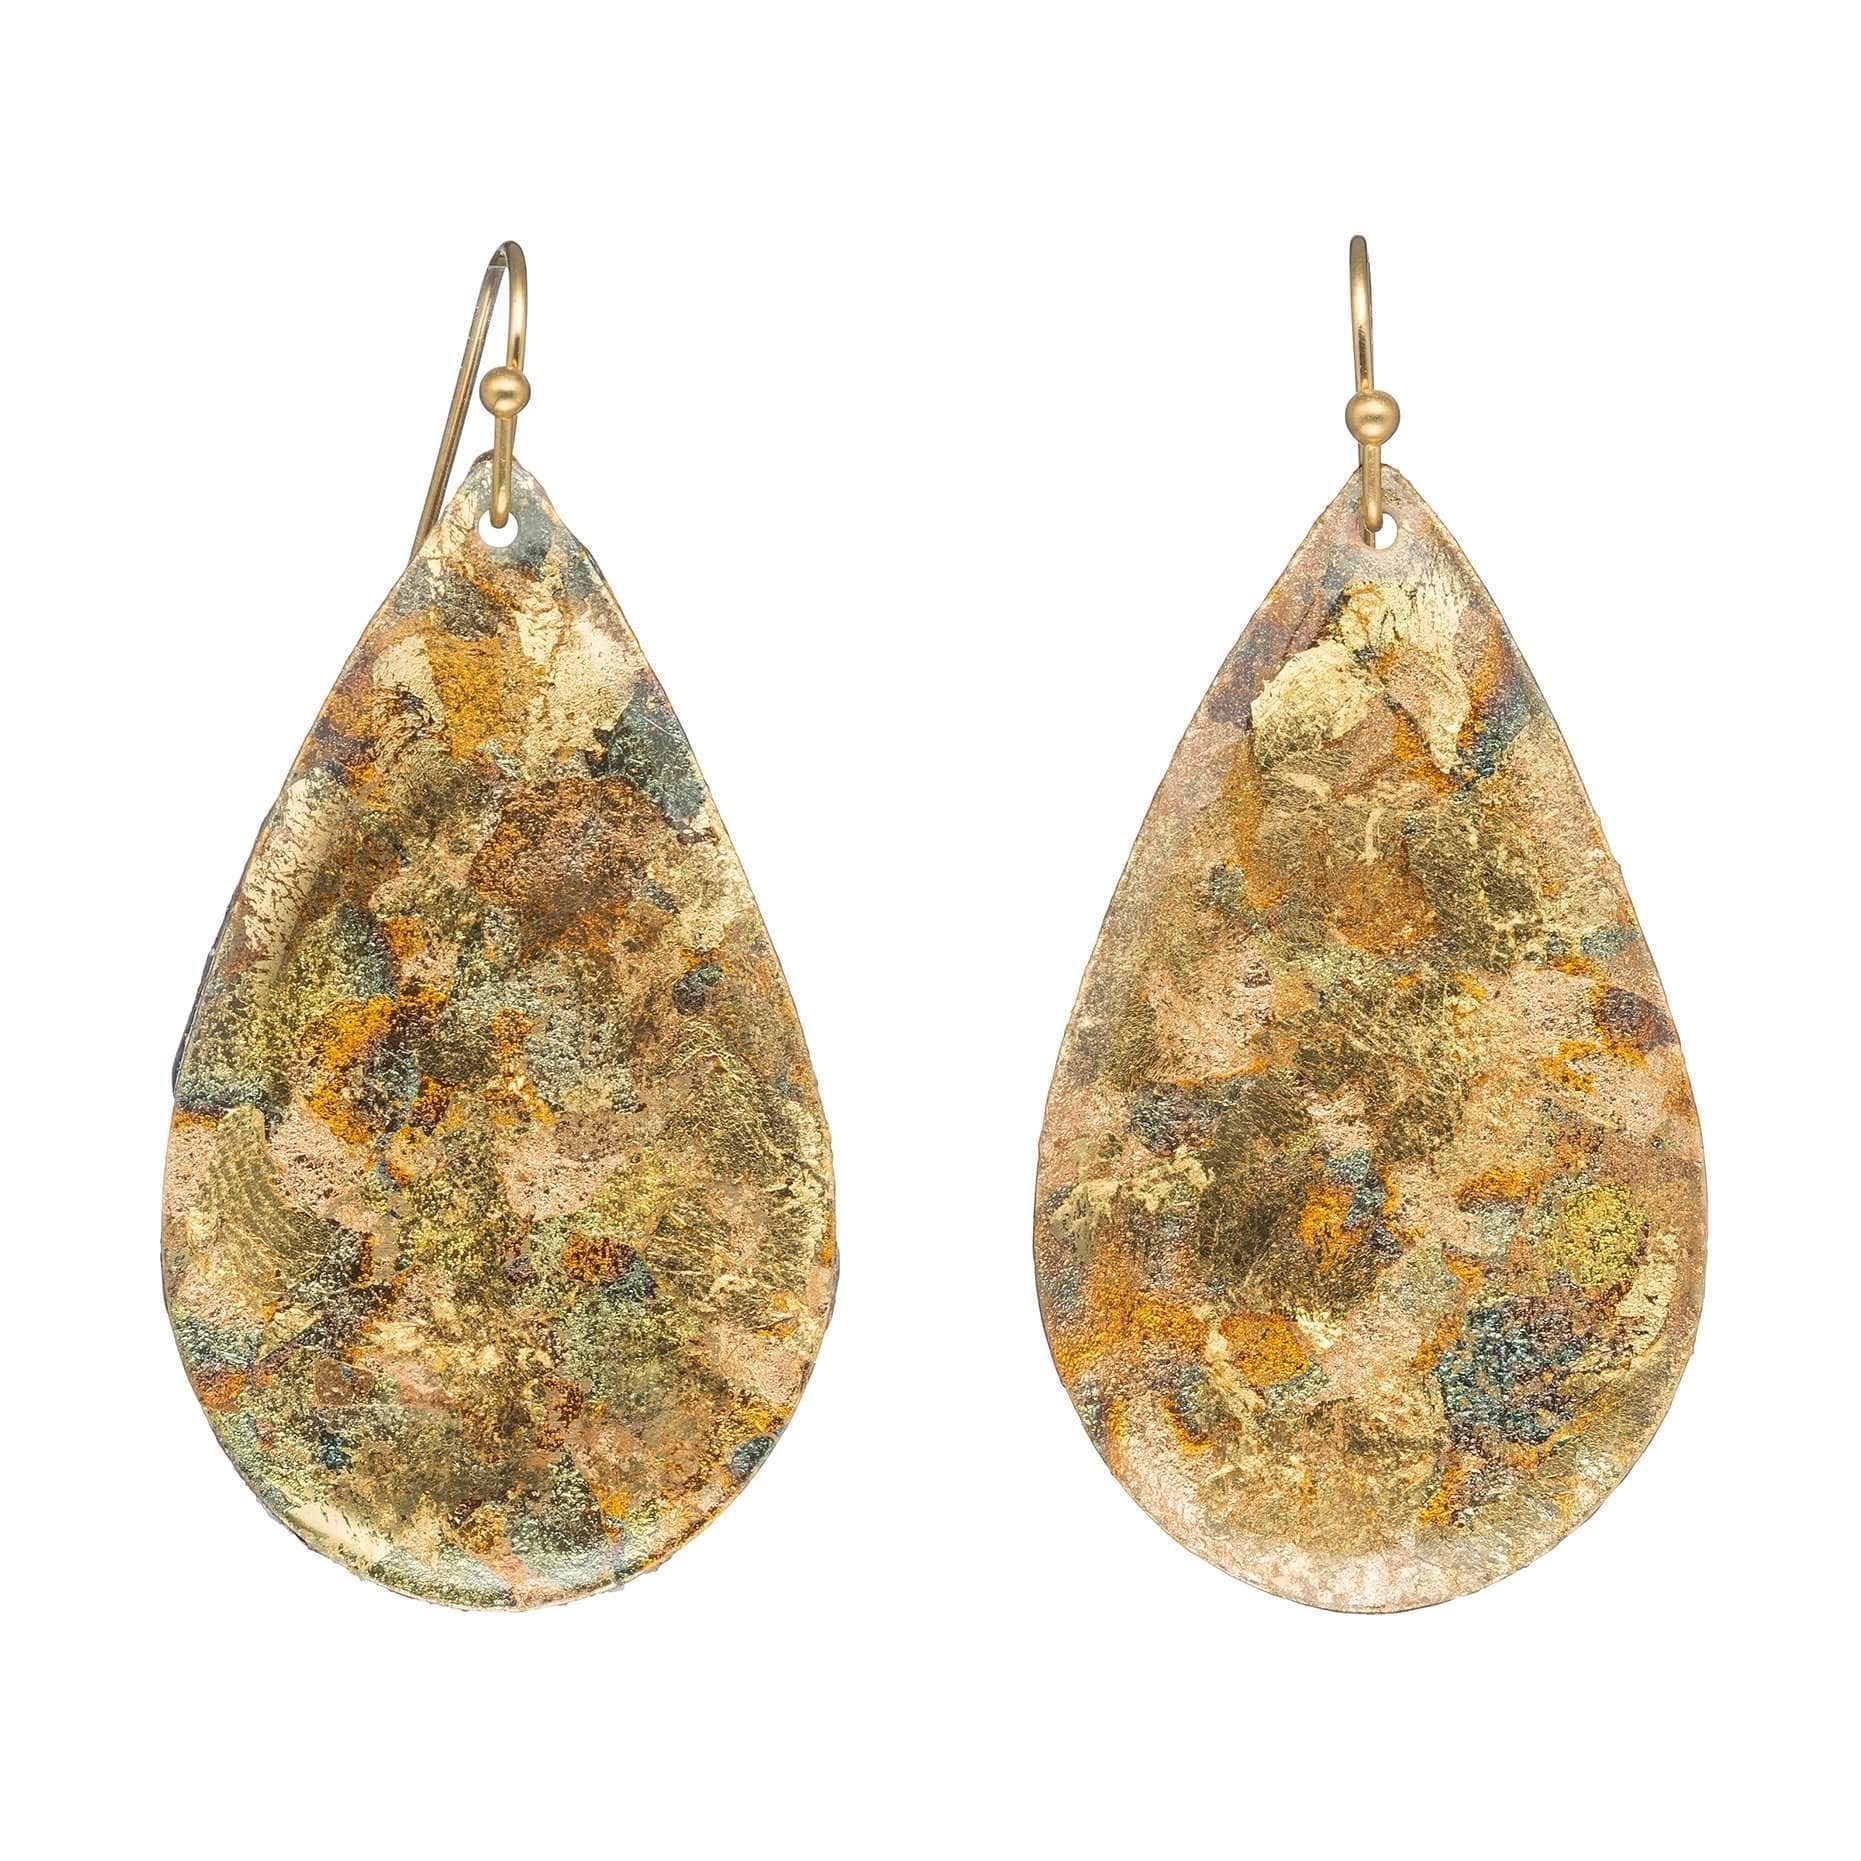 Confetti Medium Teardrop Gold Earrings - AC446-Evocateur-Renee Taylor Gallery